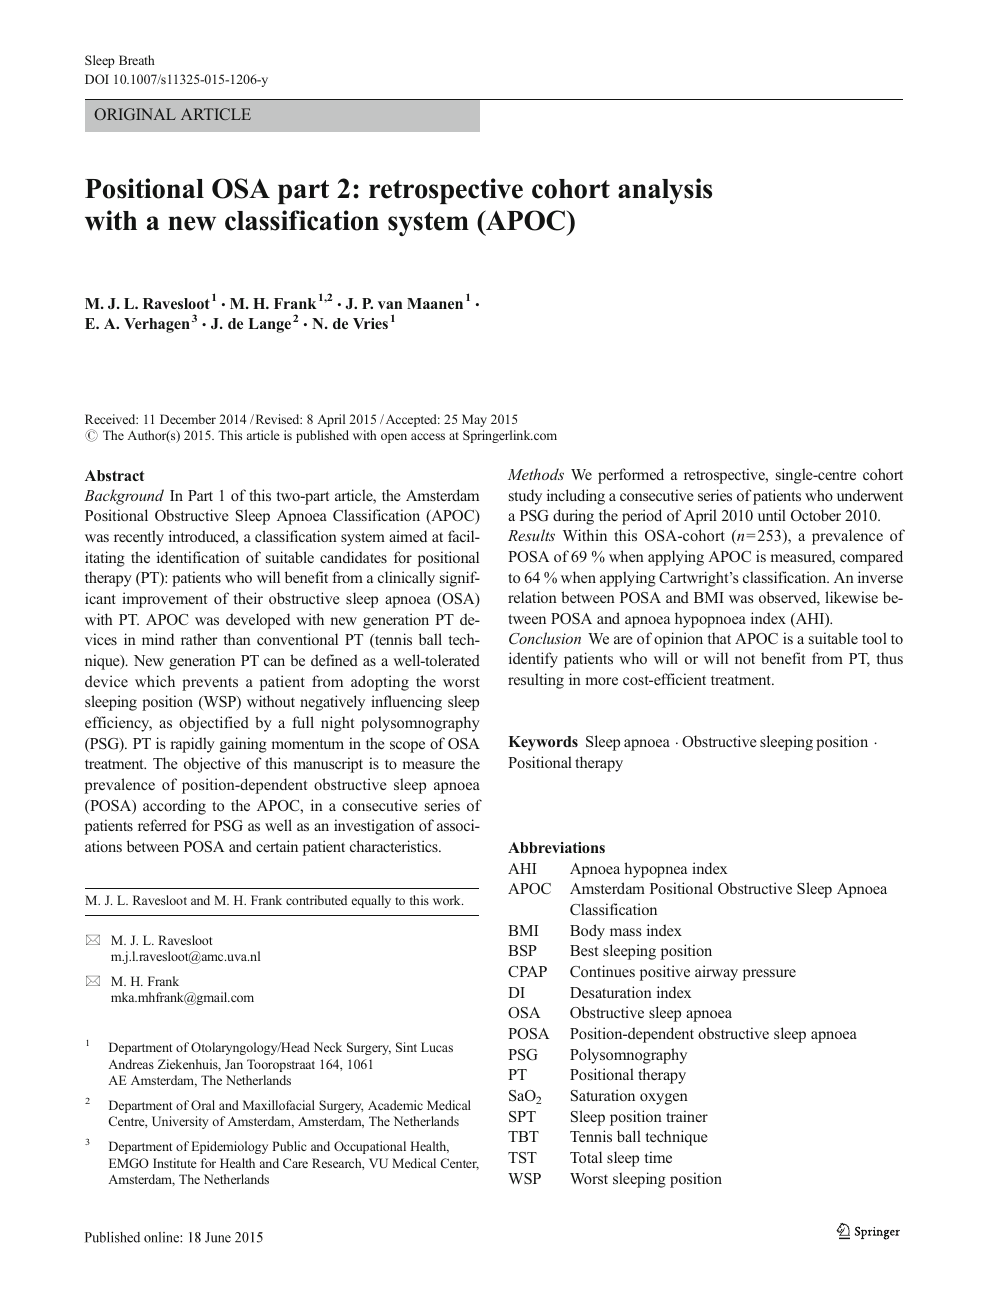 Positional Osa Part 2 Retrospective Cohort Analysis With A New Classification System Apoc Topic Of Research Paper In Clinical Medicine Download Scholarly Article Pdf And Read For Free On Cyberleninka Open